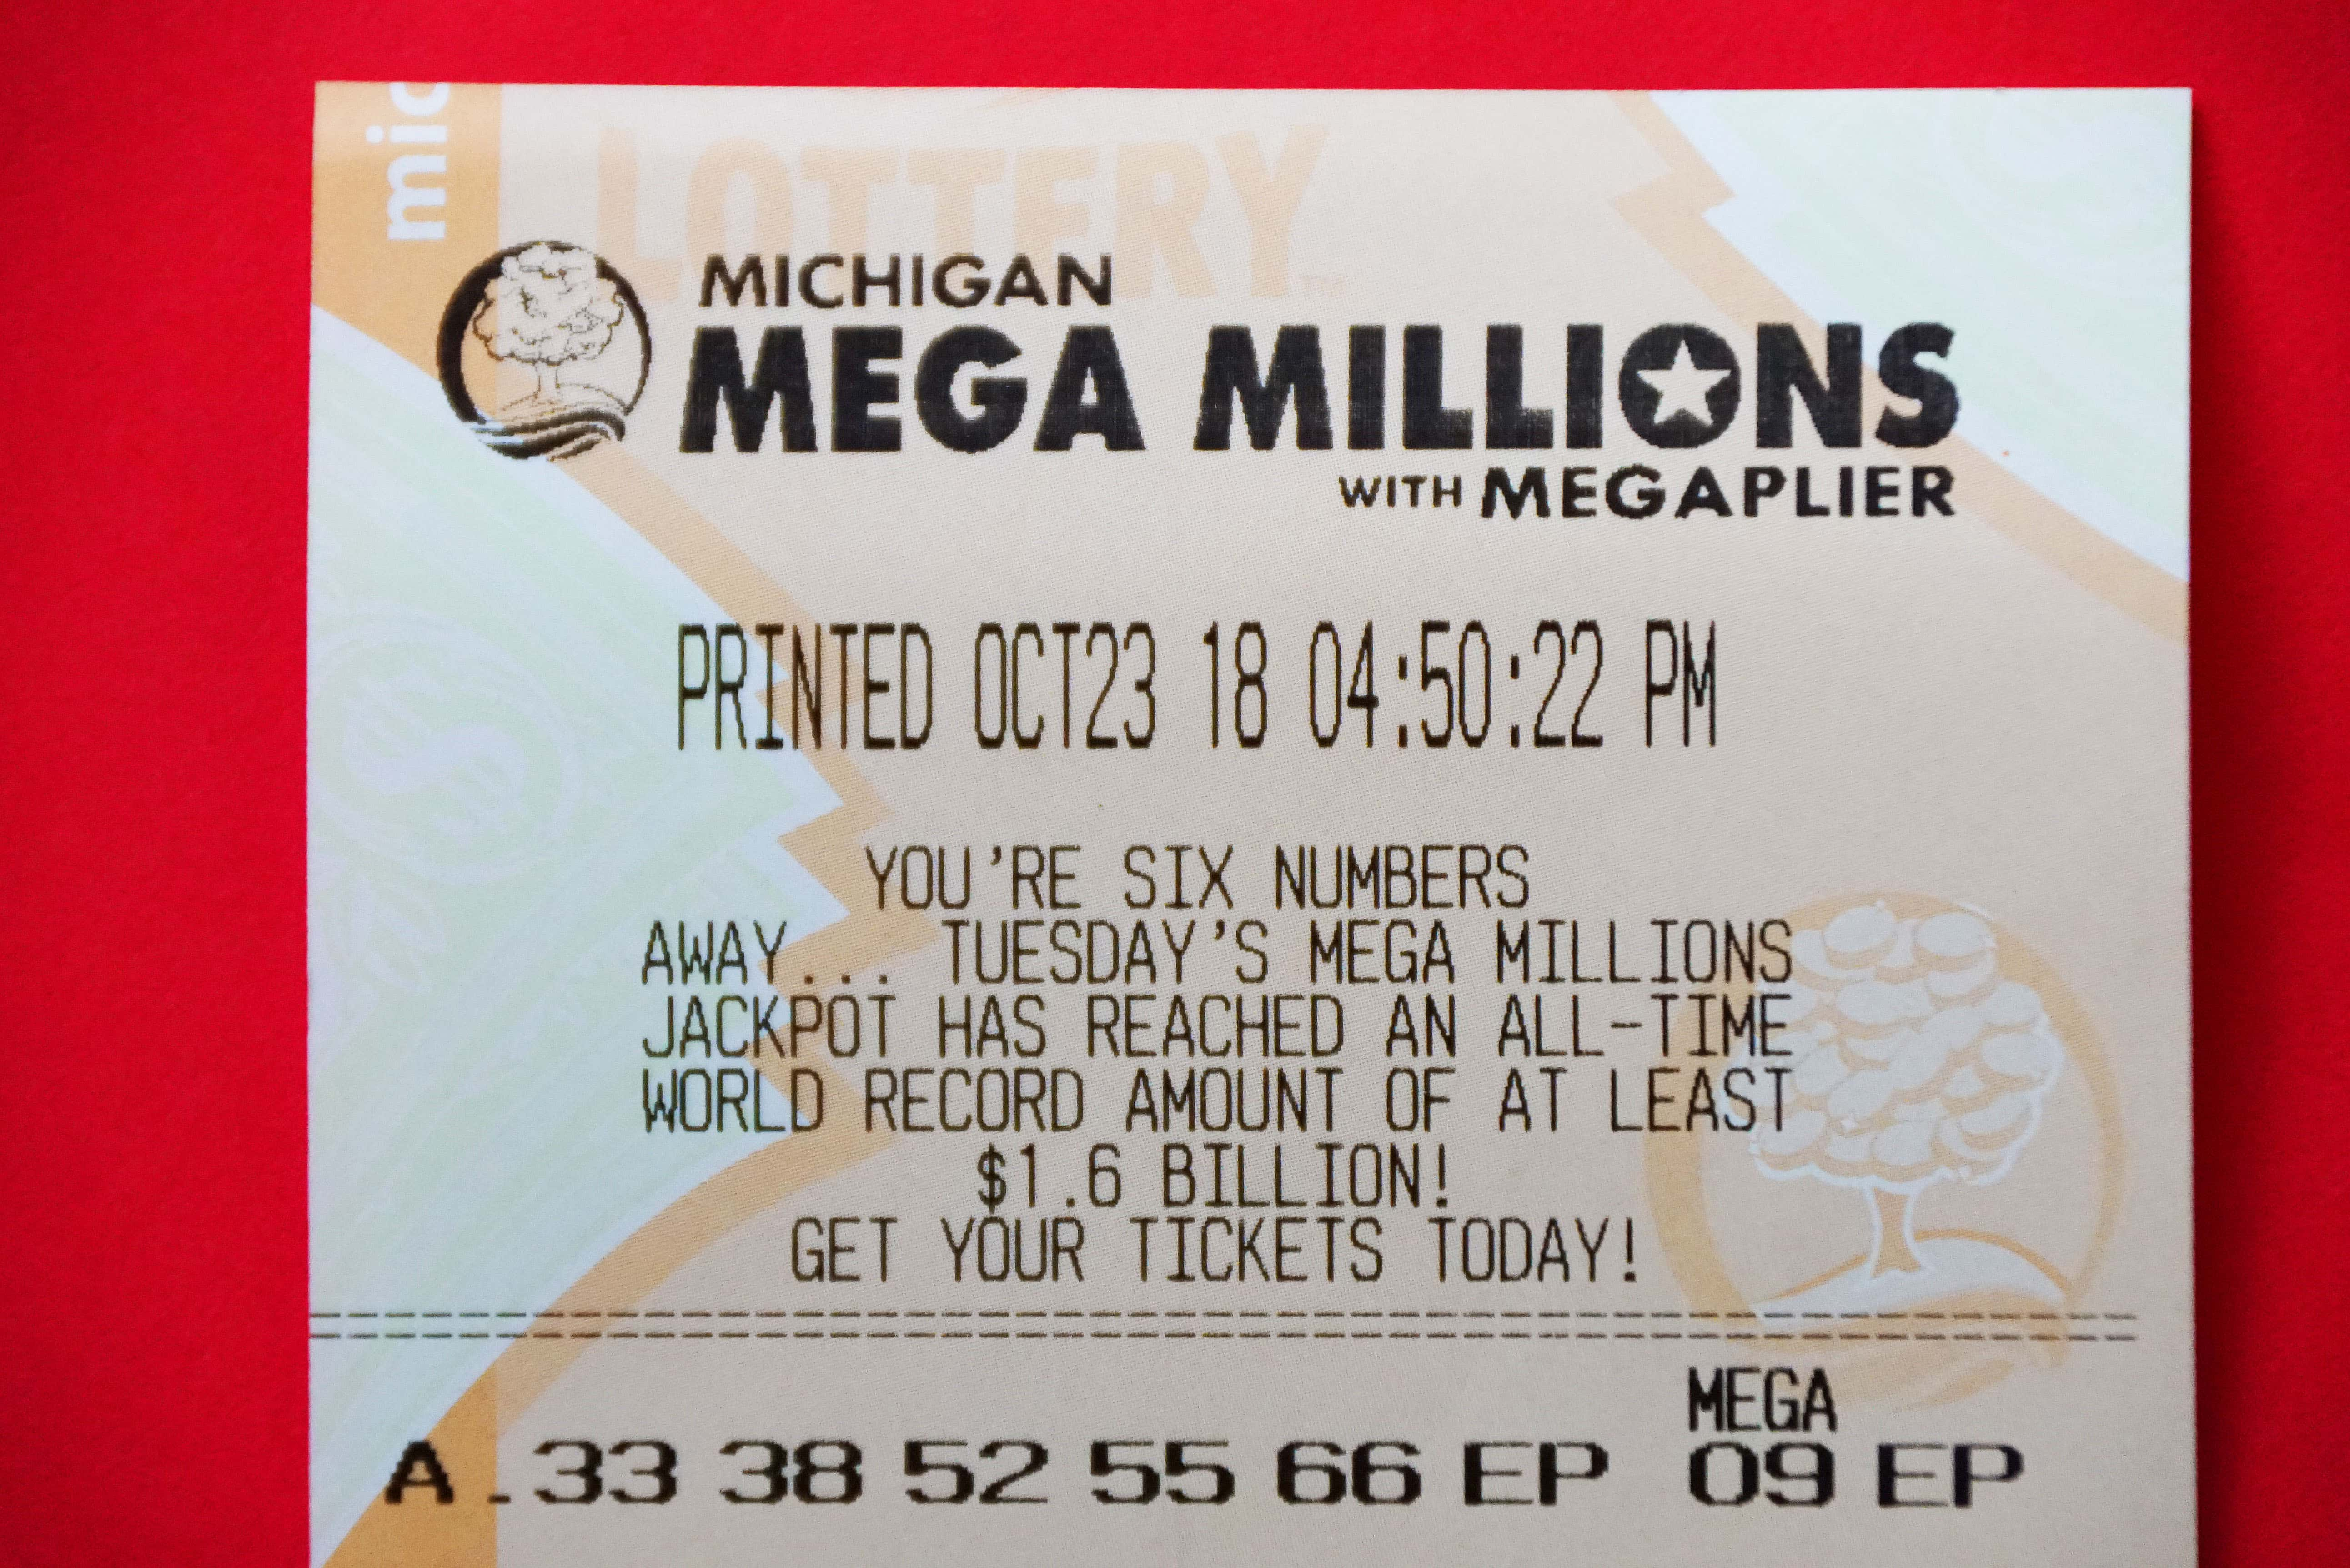 Mega Millions Tuesday Drawing Creates Two New Michigan Millionaires Moody On The Market